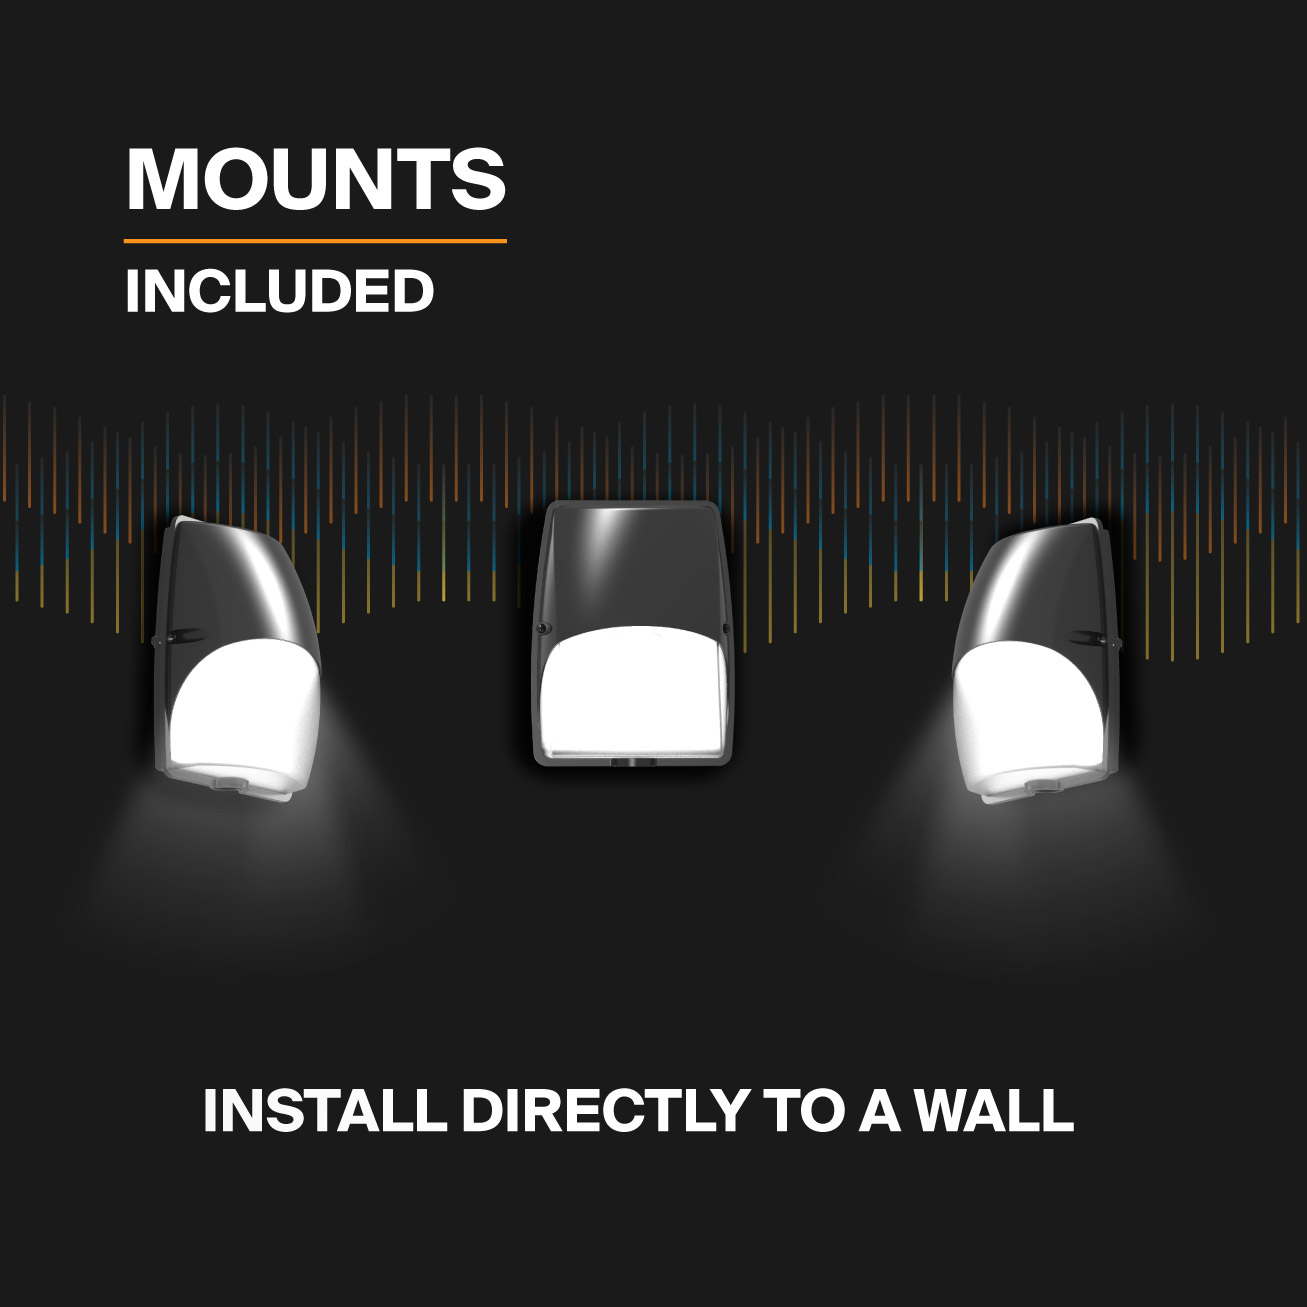 Probrite LUNA20 LED Wall Pack Install to Wall